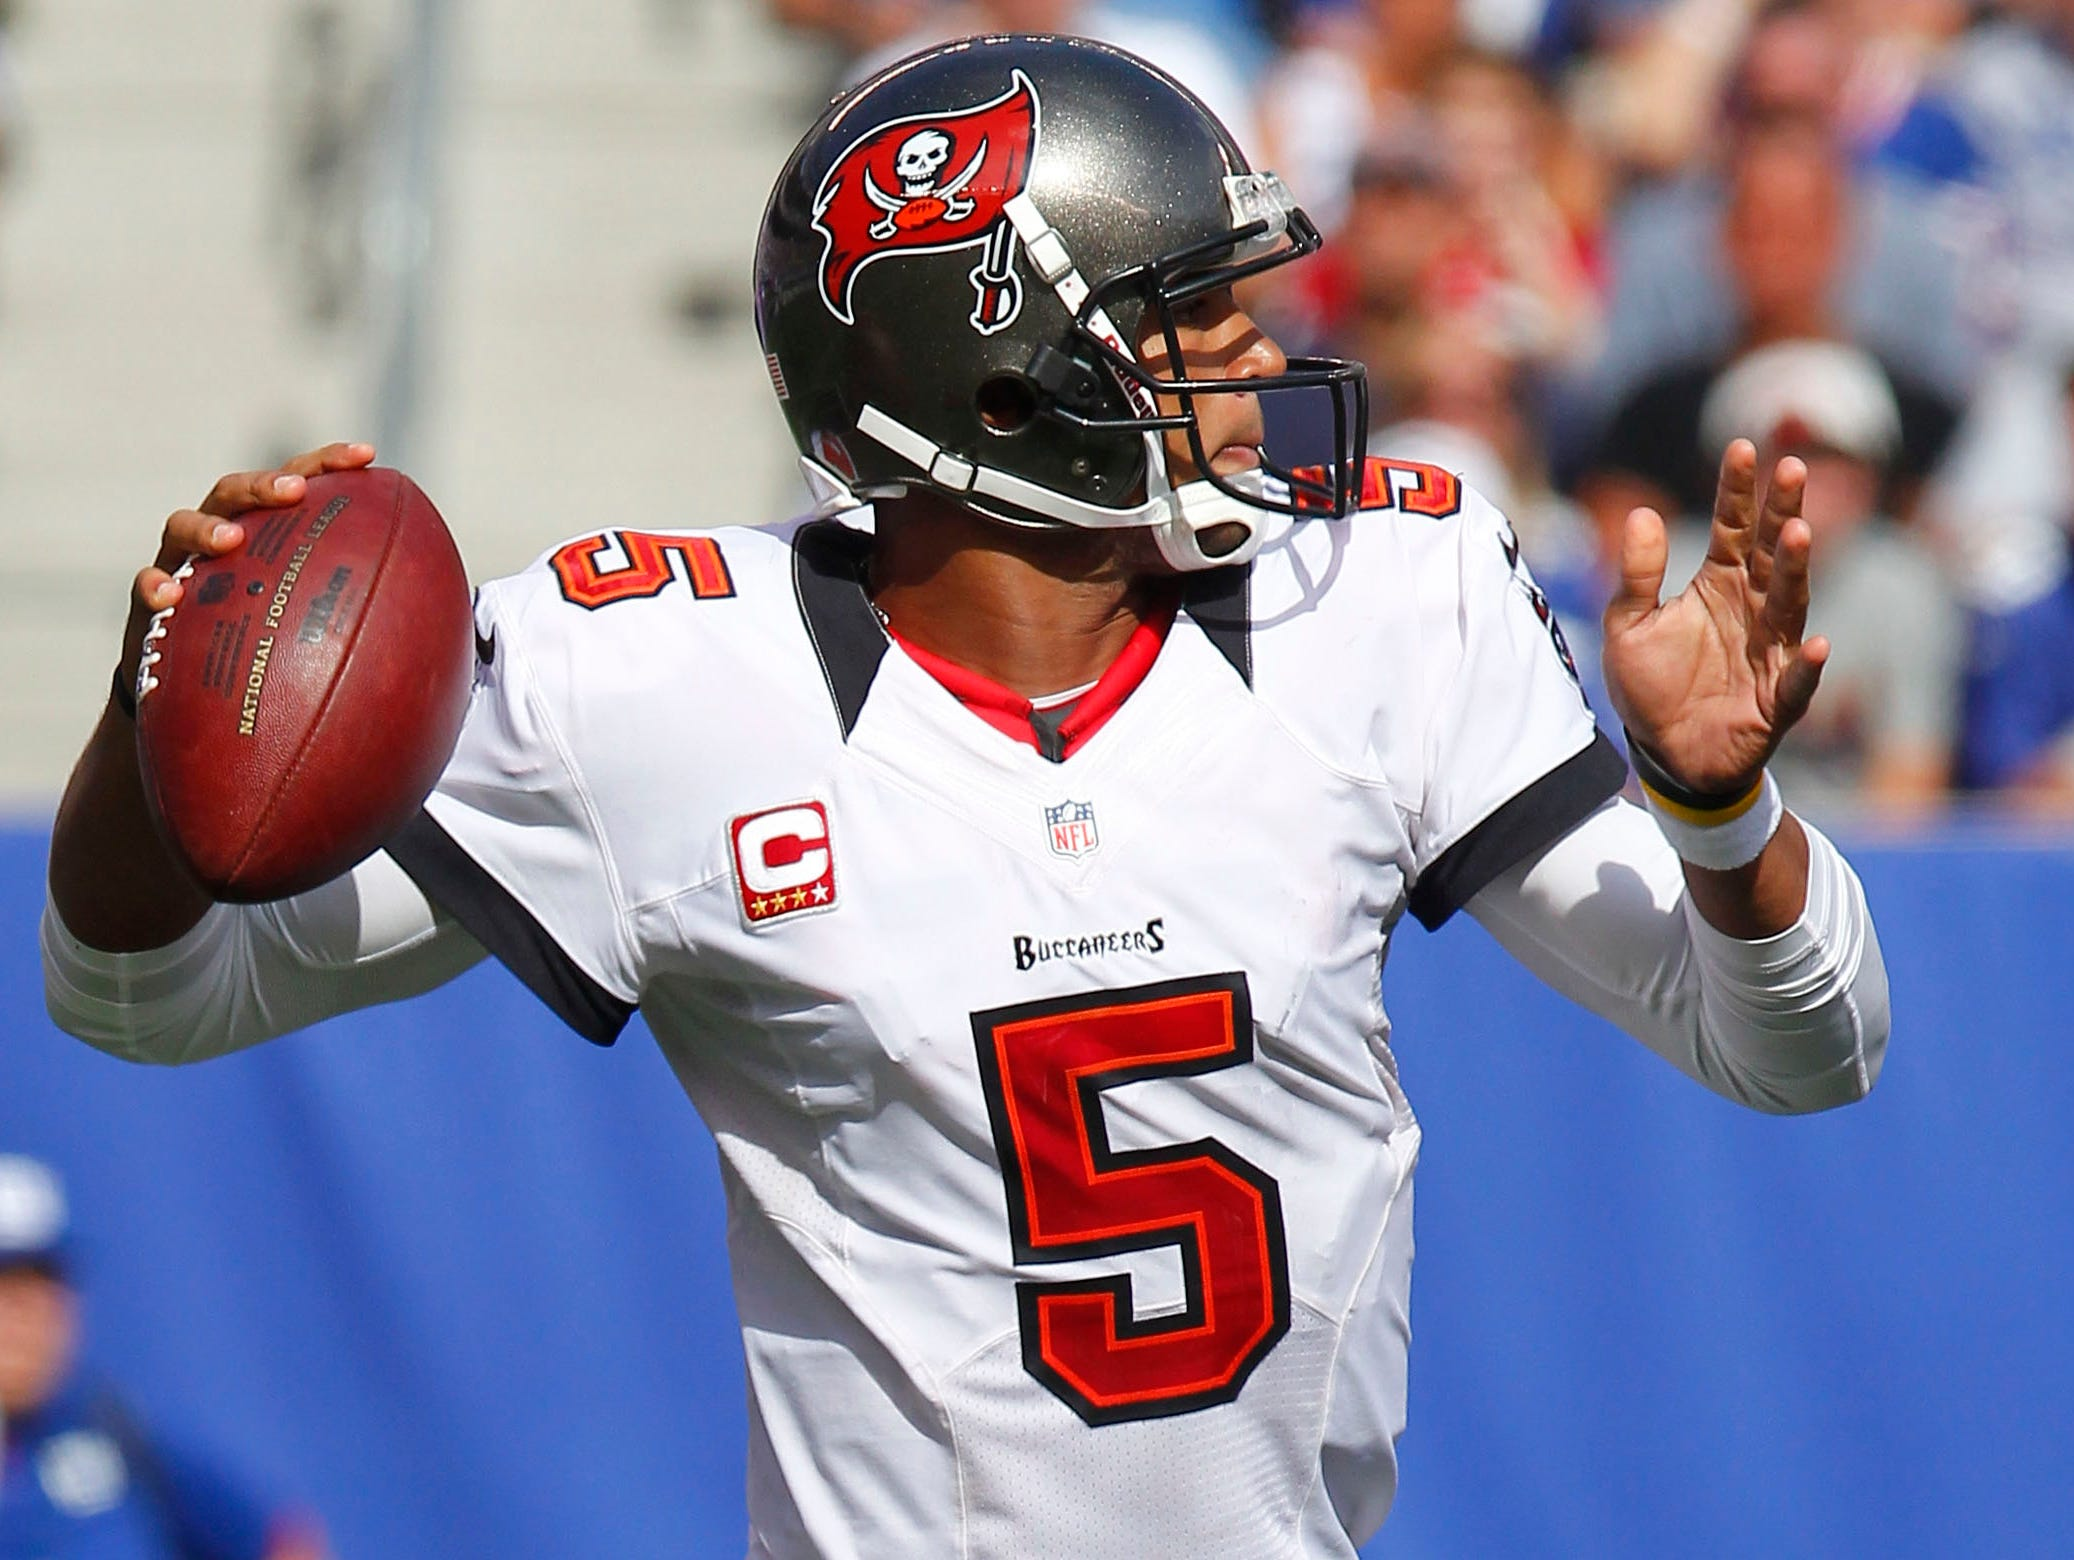 17. Josh Freeman, Tampa Bay Buccaneers